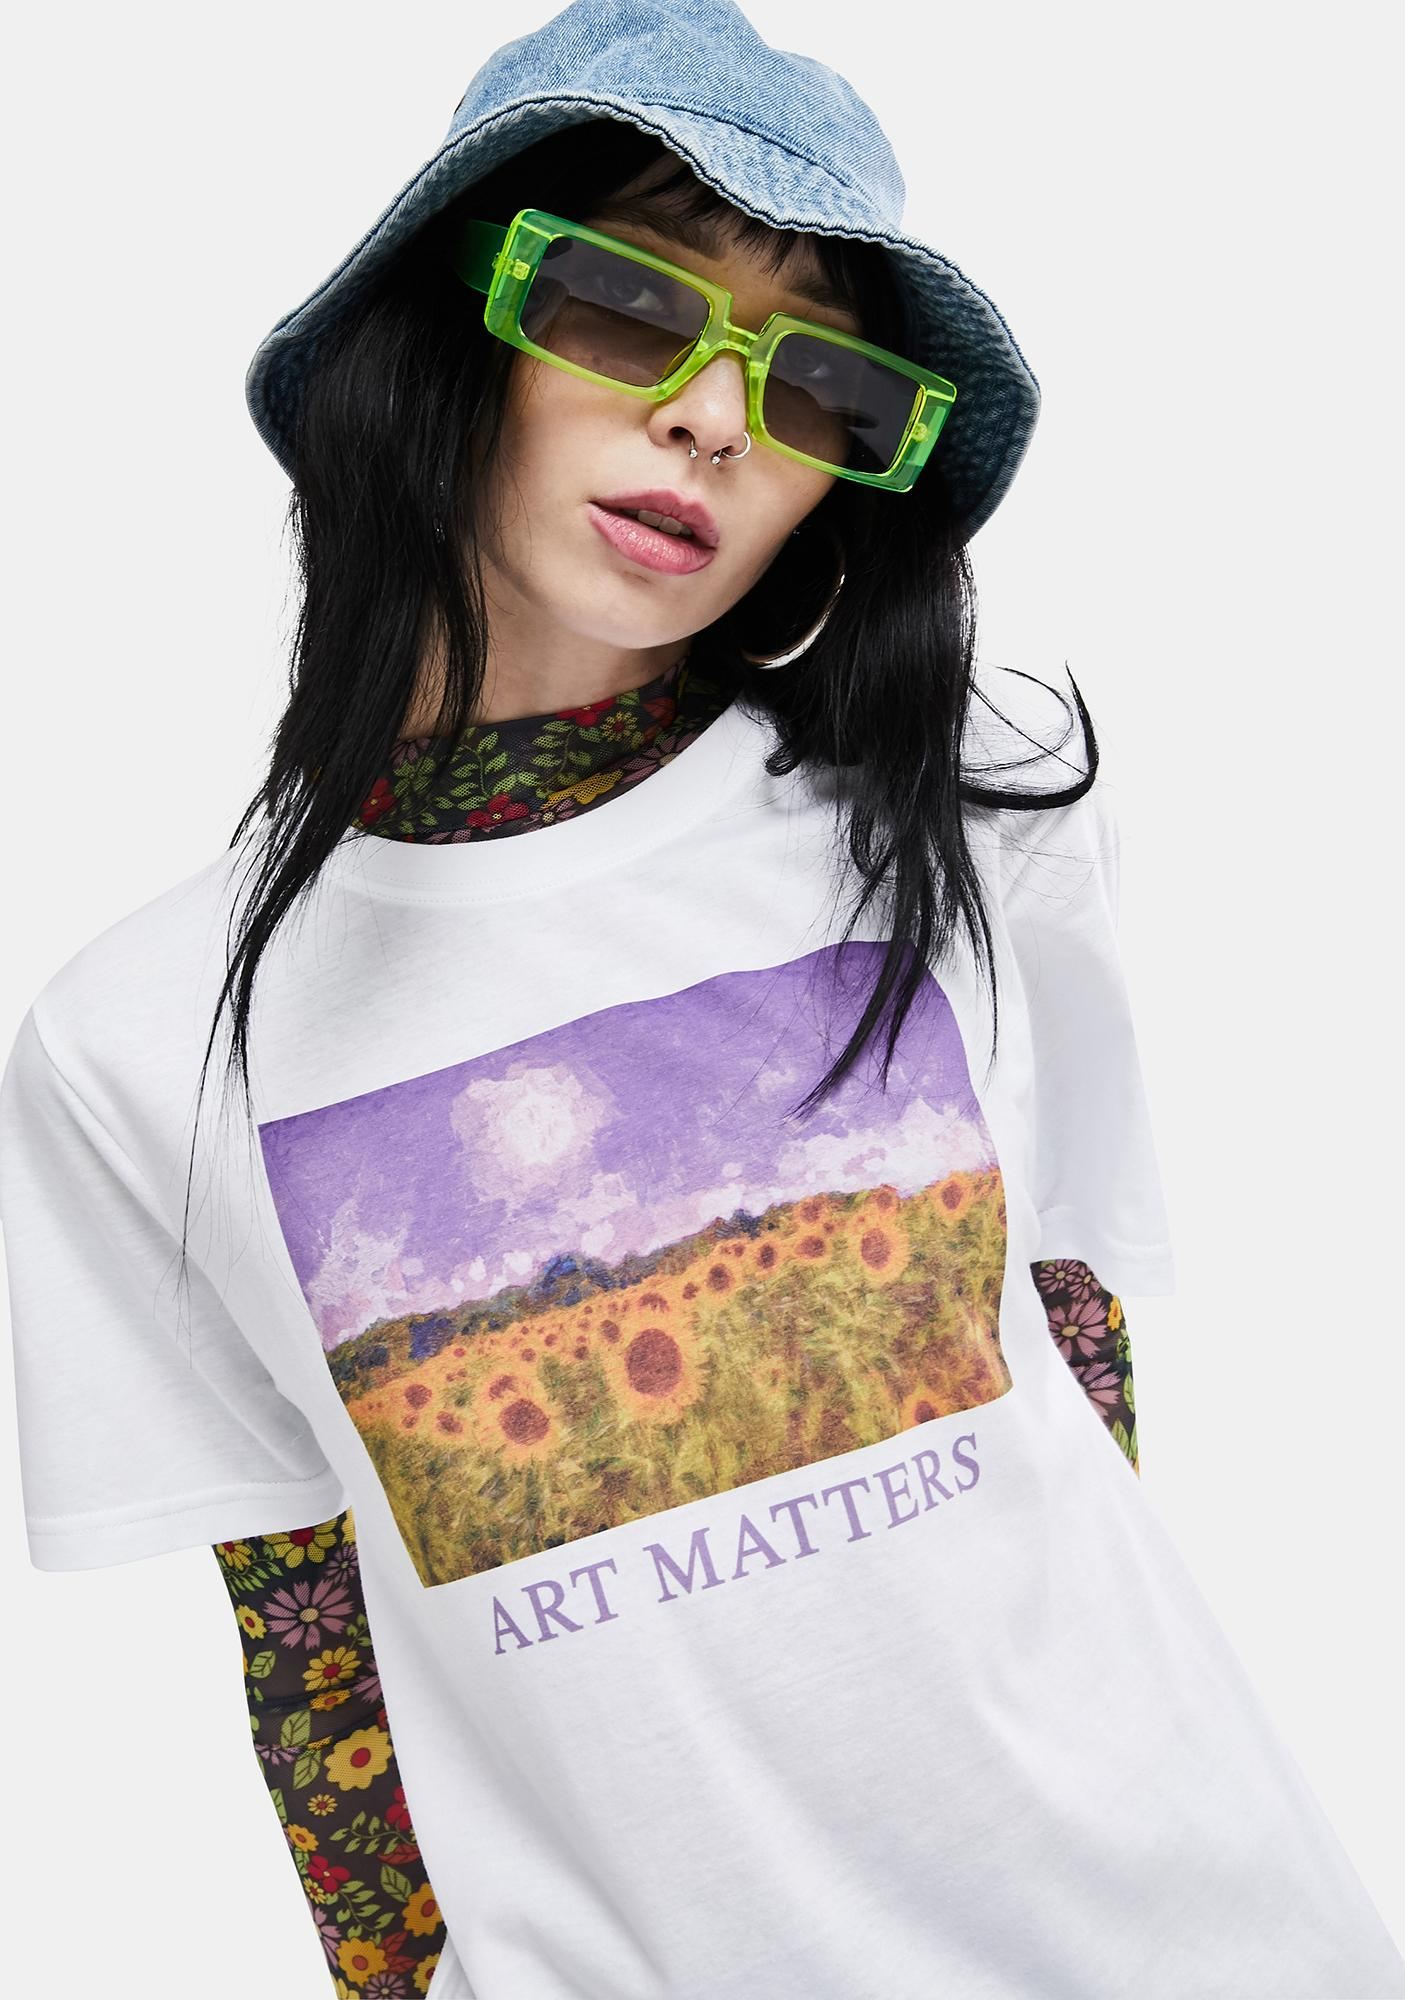 Minga Art Matters Graphic Tee